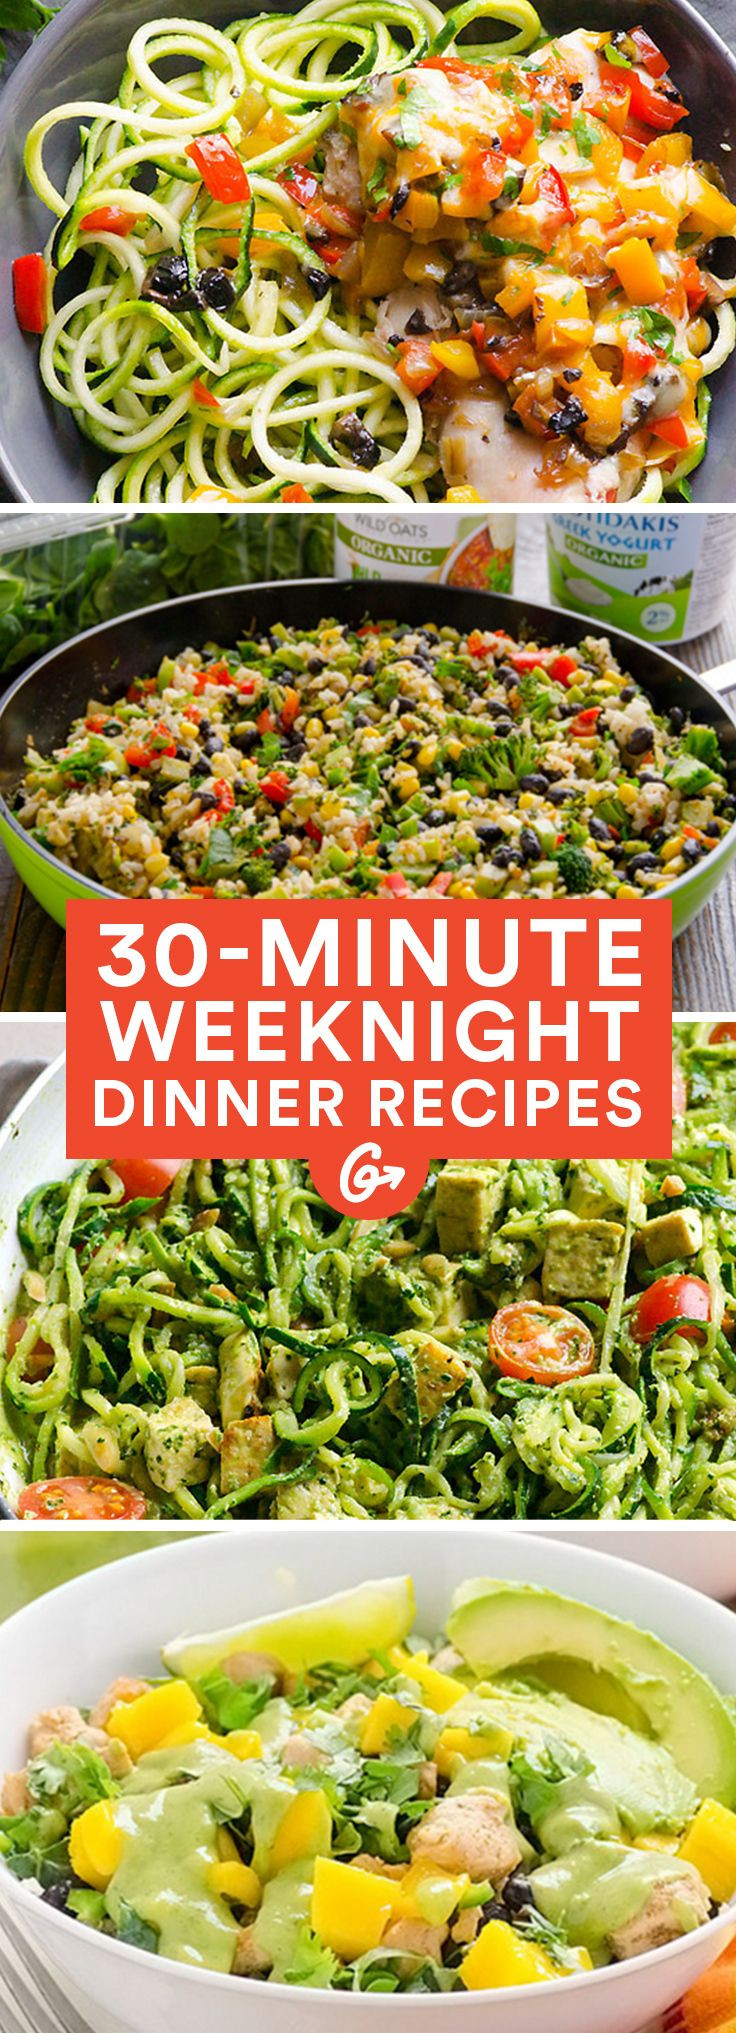 Healthy Weekday Lunches  The 25 best Healthy weeknight dinners ideas on Pinterest